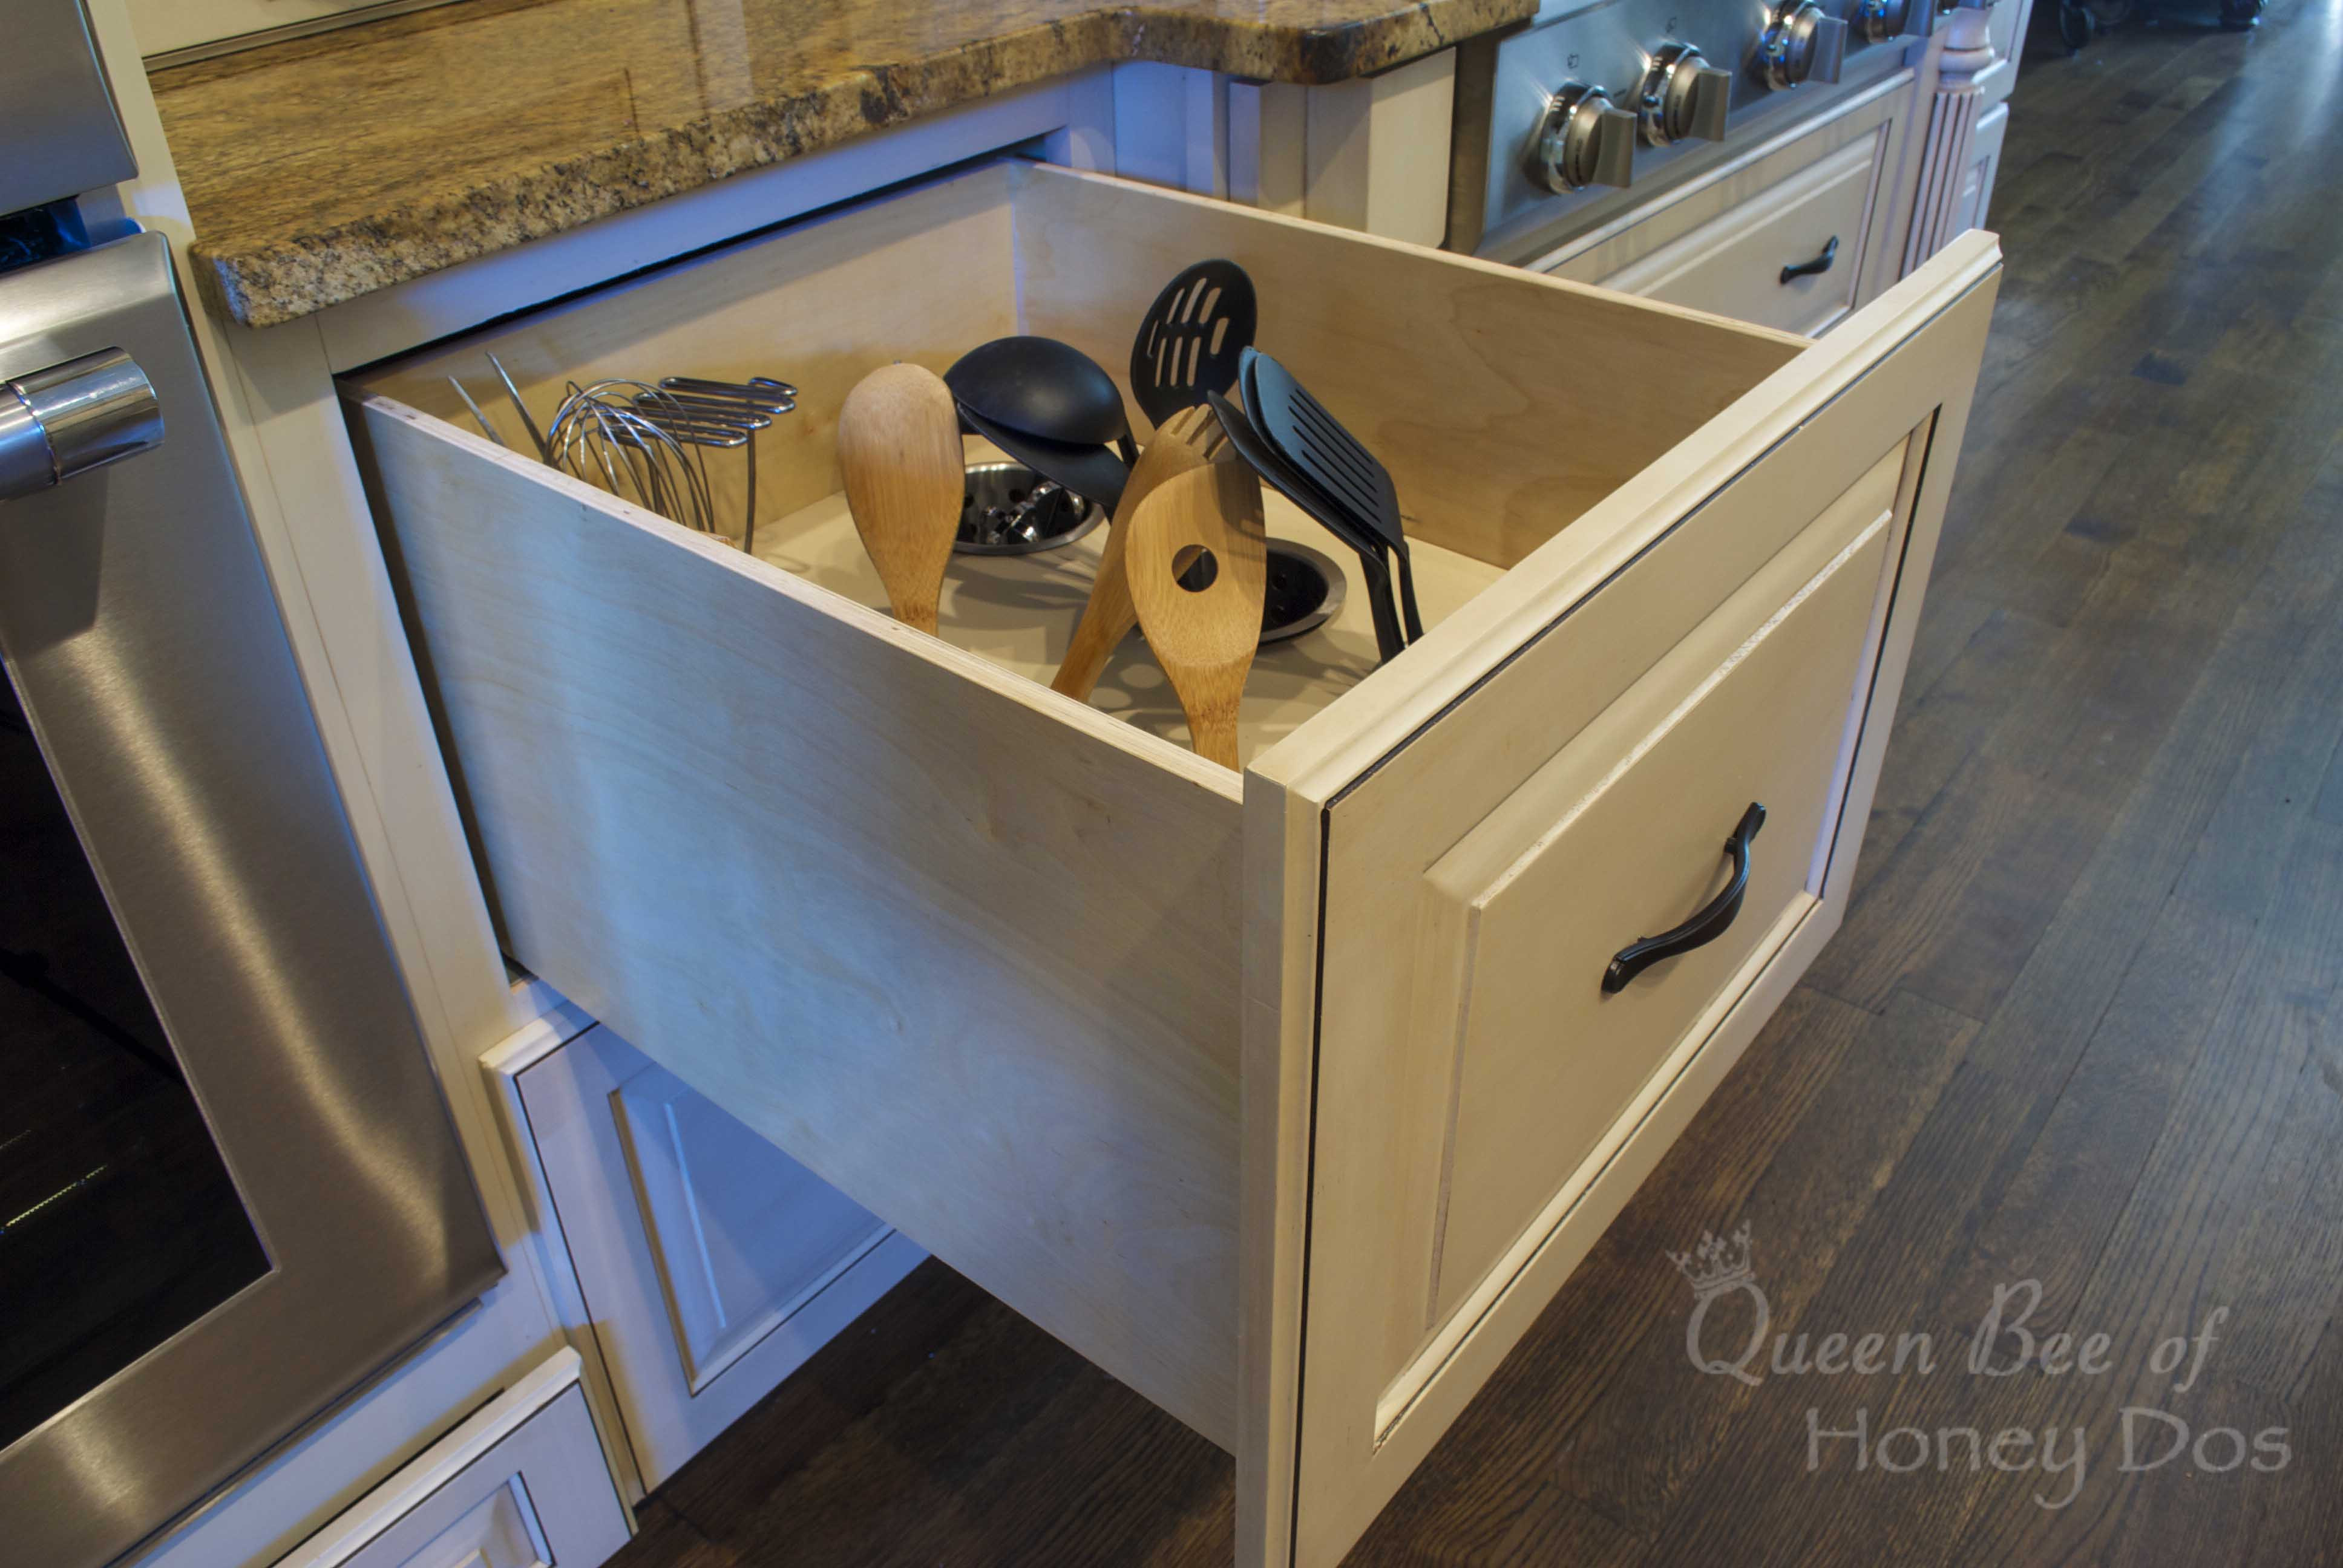 Best ideas about DIY Kitchen Drawers . Save or Pin Remodelaholic Now.